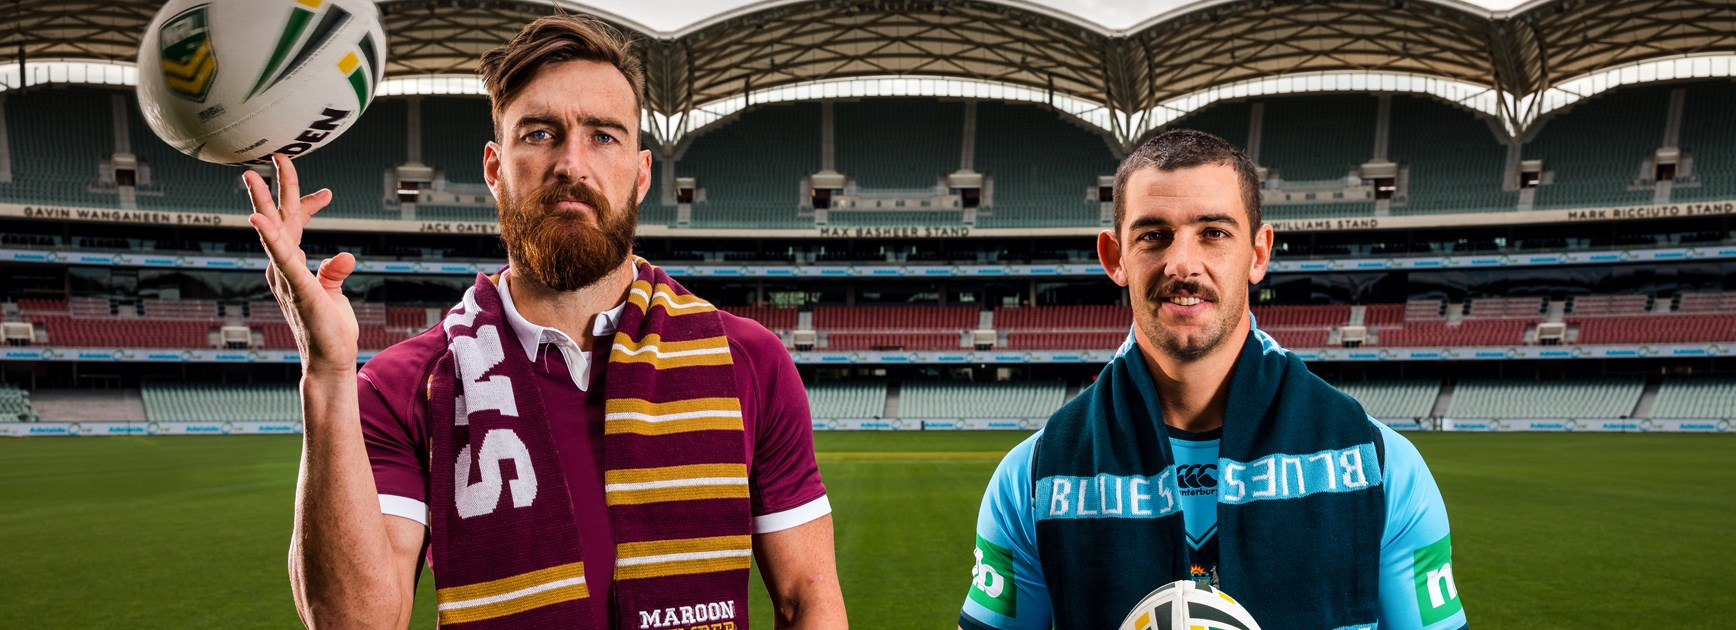 Adelaide Oval to provide 'pumping' Origin atmosphere, say AFL stars